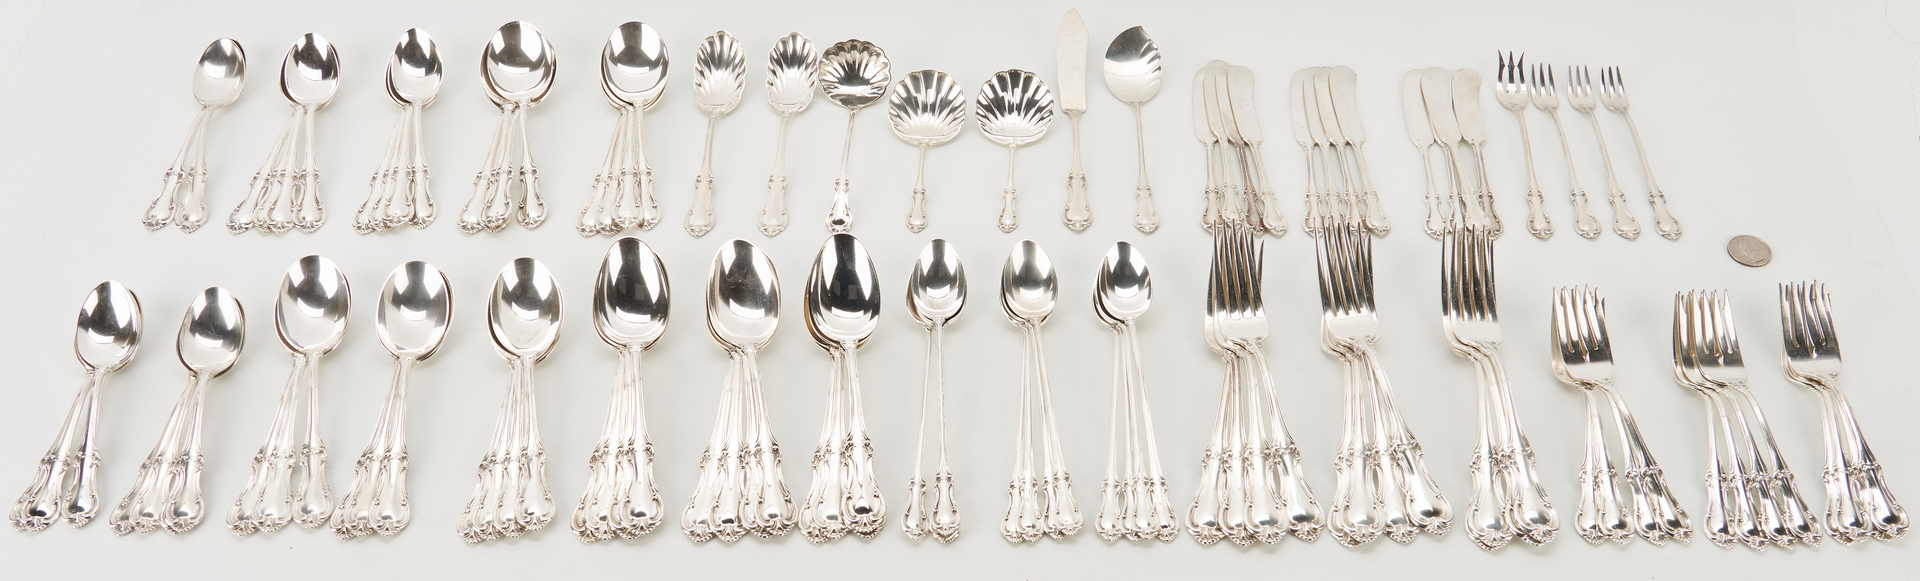 Lot 72: 132 pcs. International Joan of Arc Sterling Silver Flatware